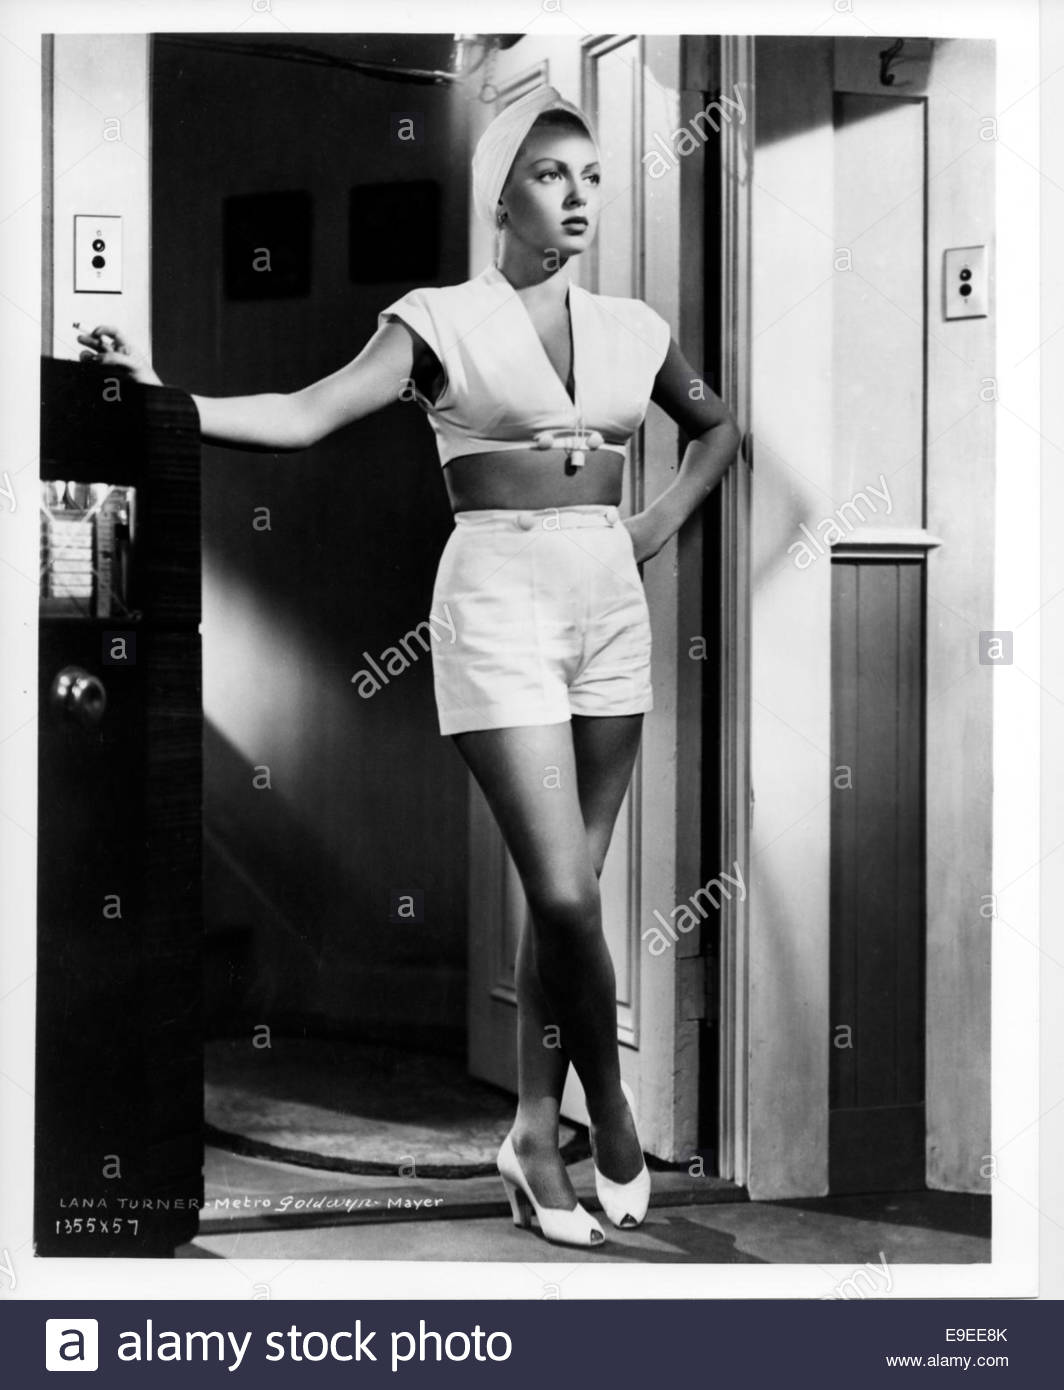 THE POSTMAN ALWAYS RINGS TWICE (1946) - LANA TURNER - Stock Image